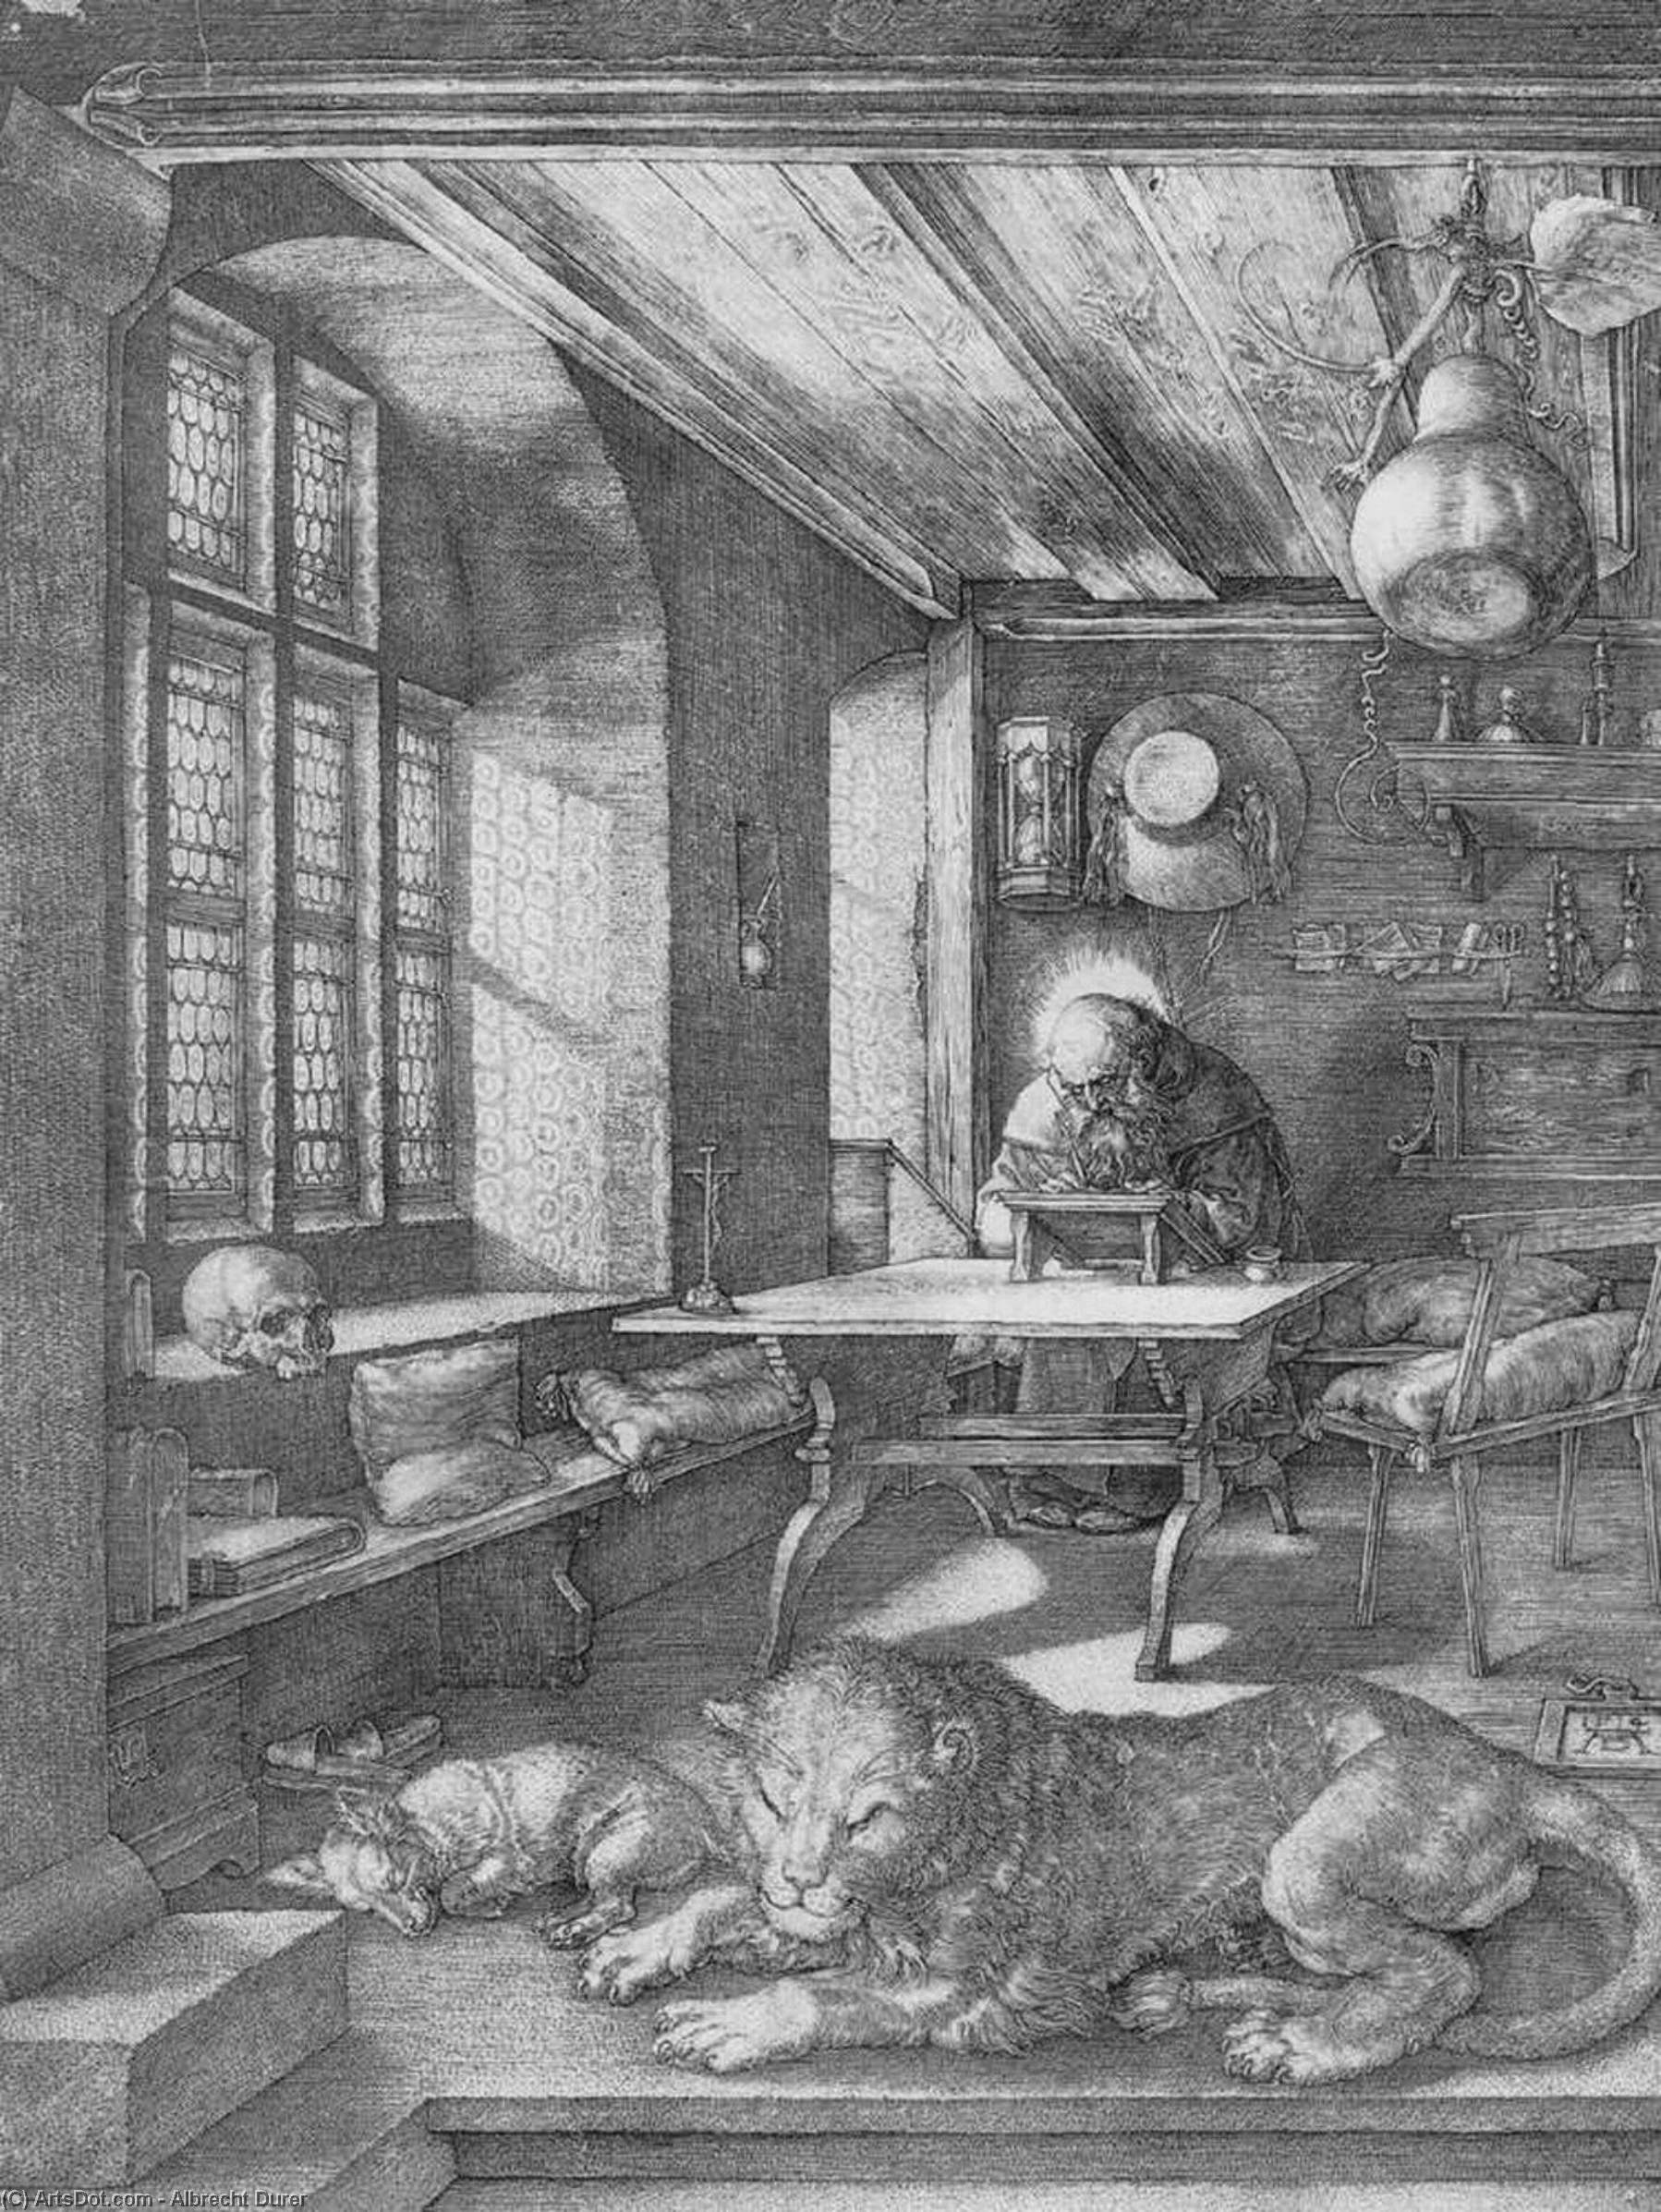 Wikioo.org - The Encyclopedia of Fine Arts - Painting, Artwork by Albrecht Durer - St Jerome in his Study